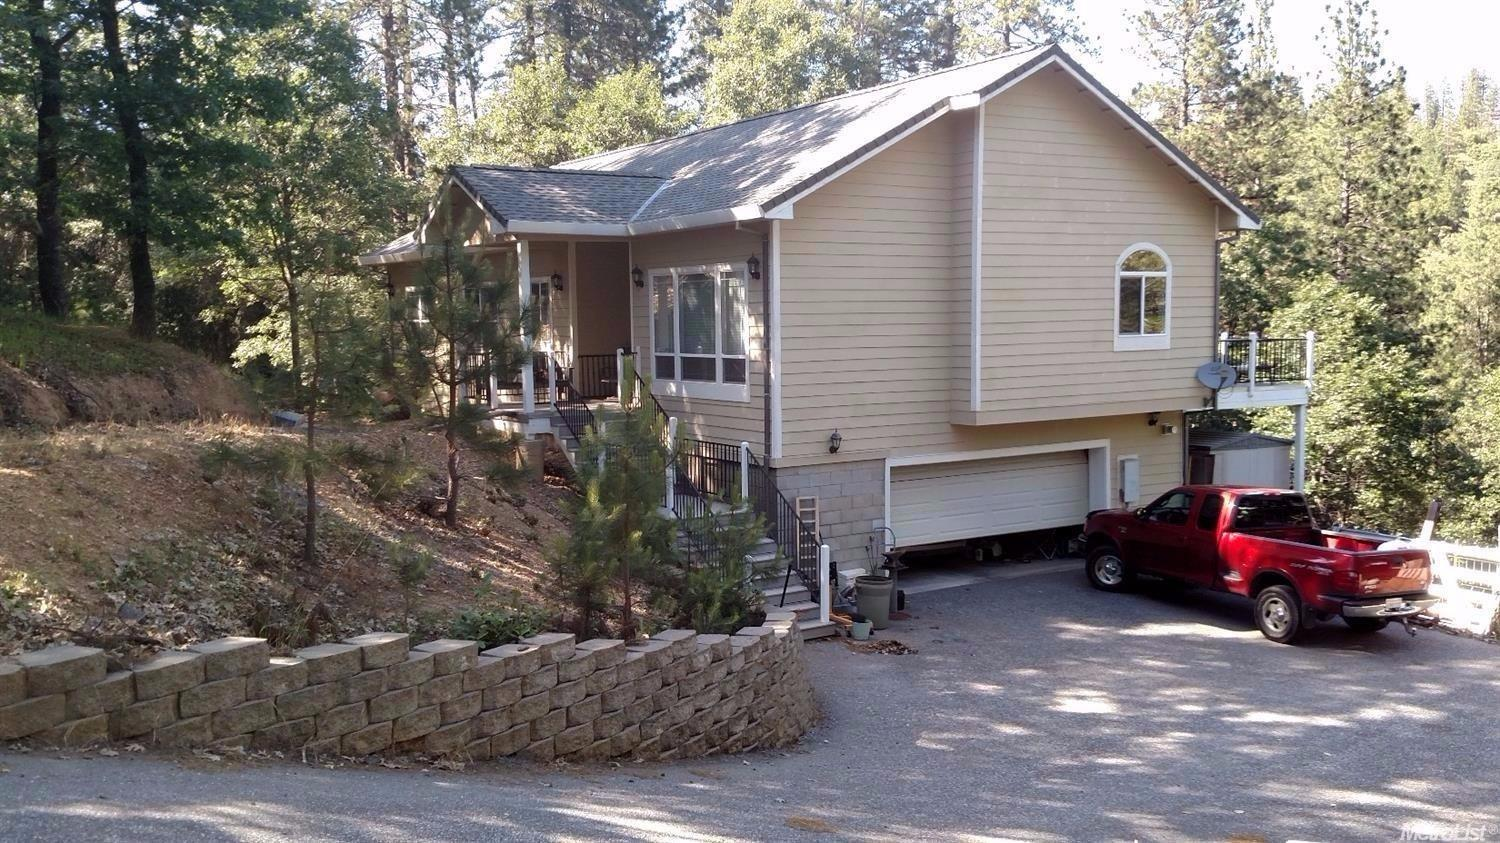 6435 Green Pine Ct, Foresthill, CA 95631